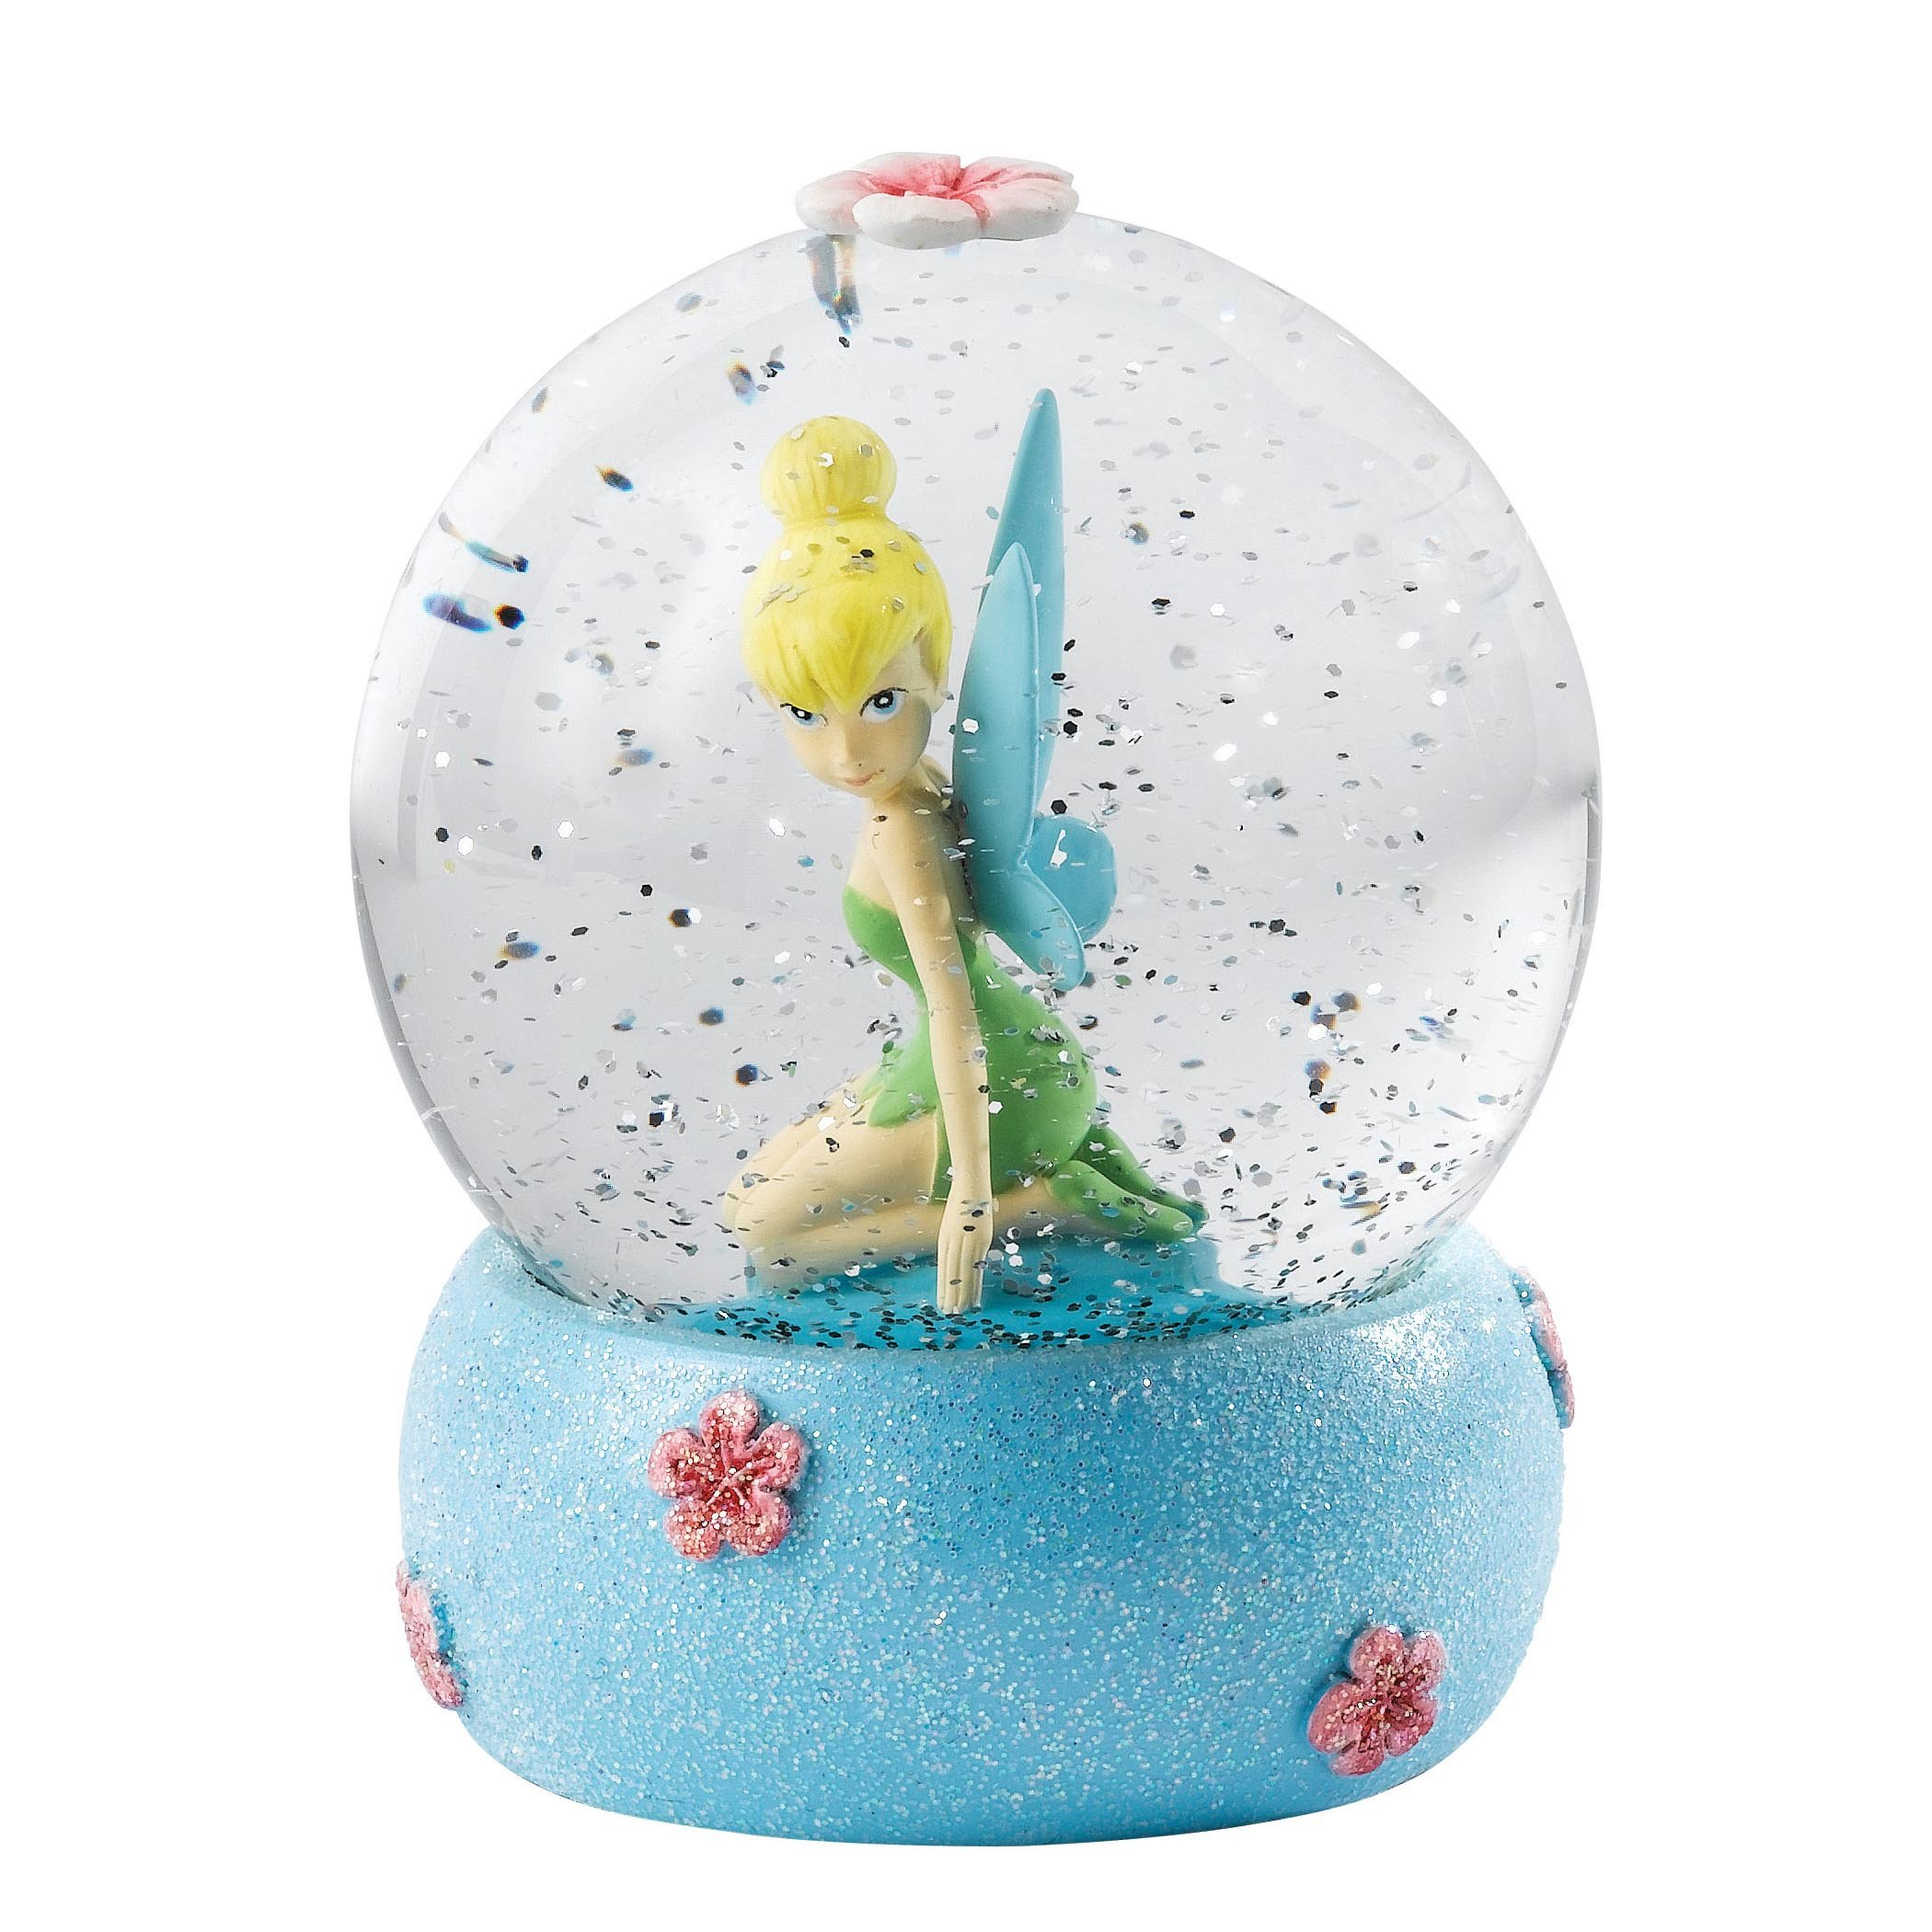 Enchanting Disney Tinker Bell Waterball by Enchanting Disney by Enchanting Disney